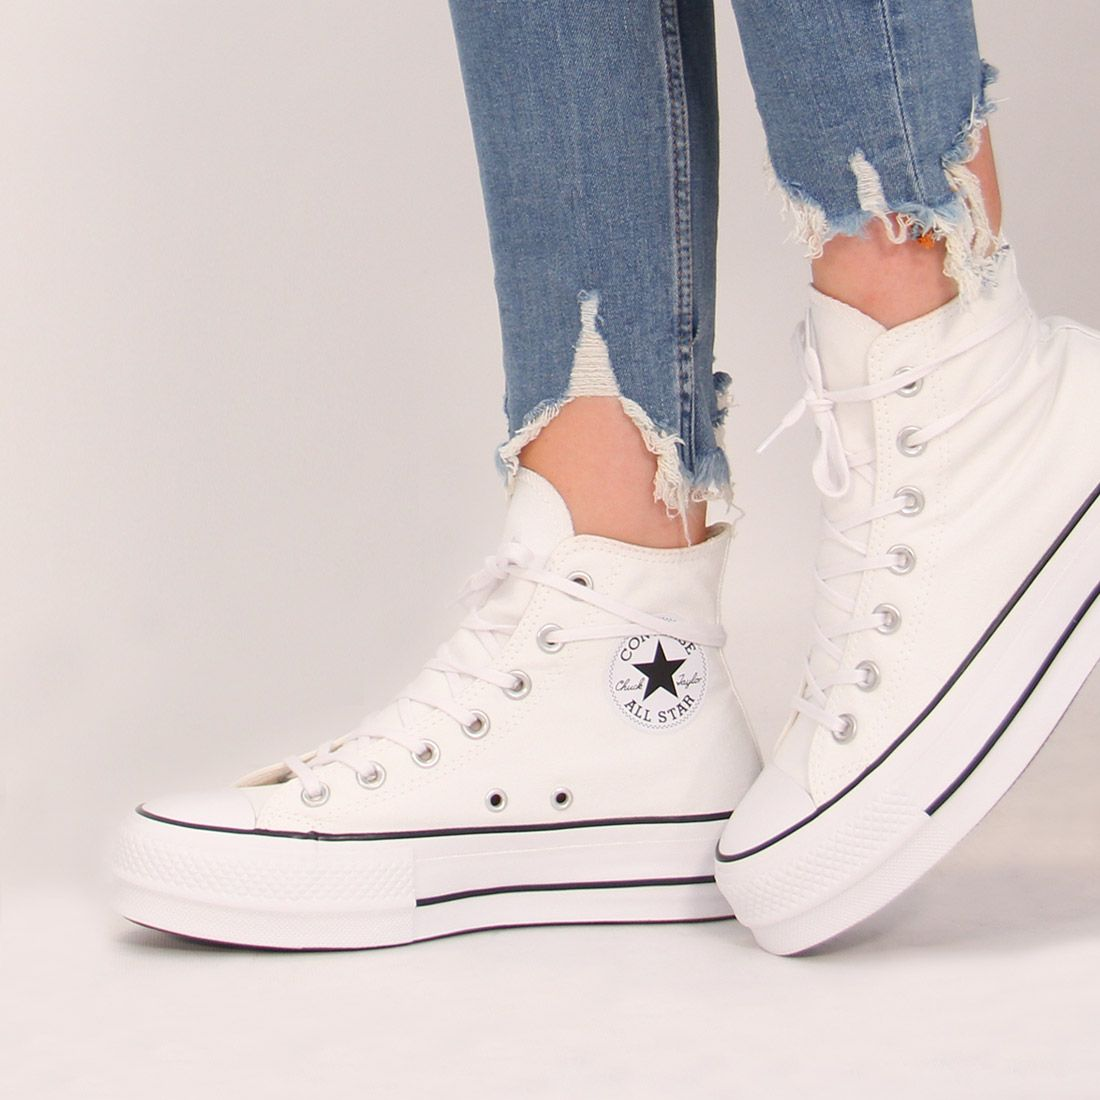 converse mujer lift altas